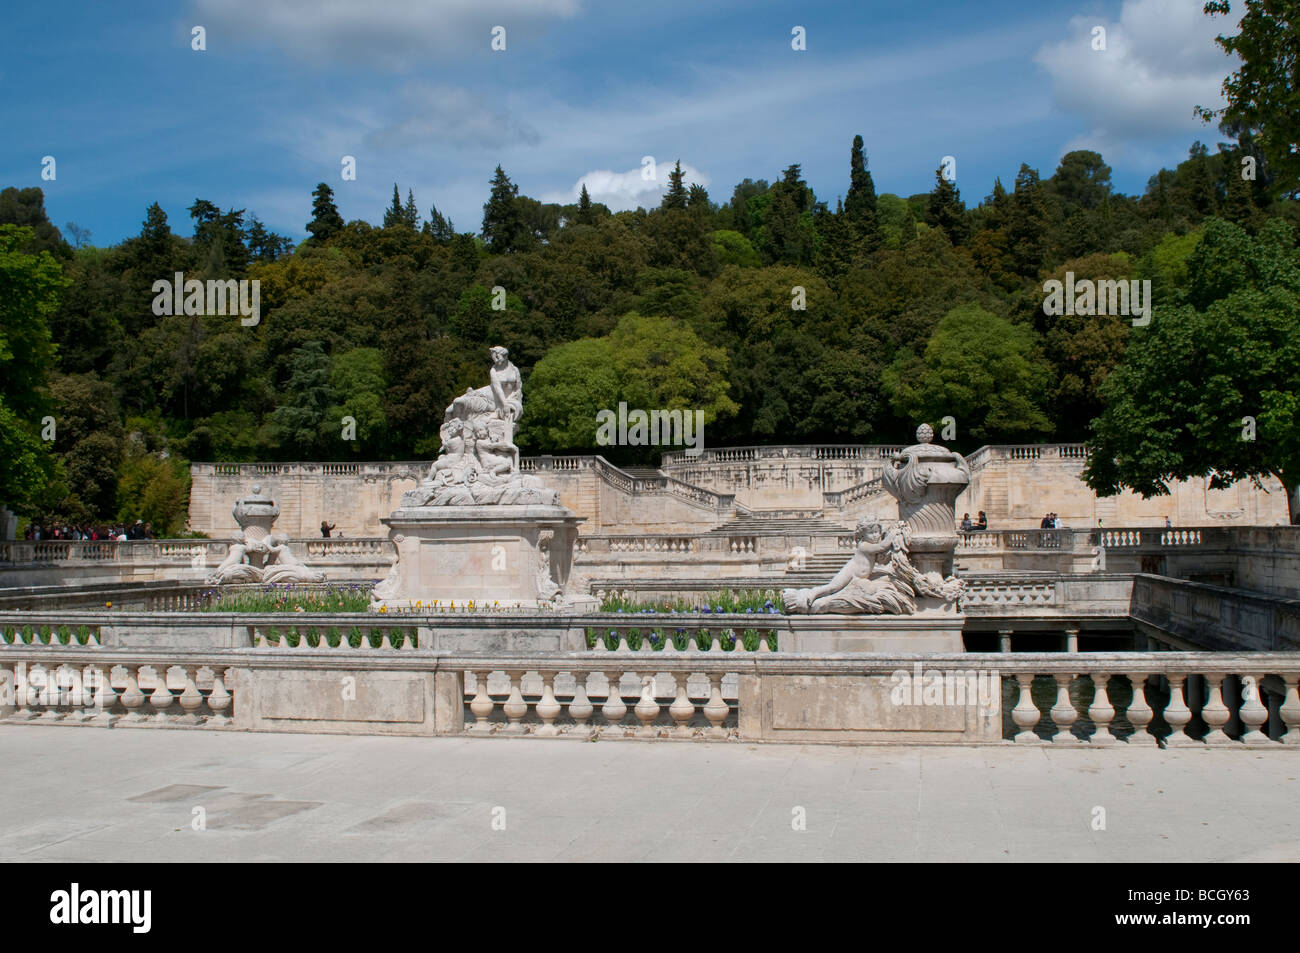 Image De Fontaine De Jardin jardin de la fontaine fountain garden nimes france stock